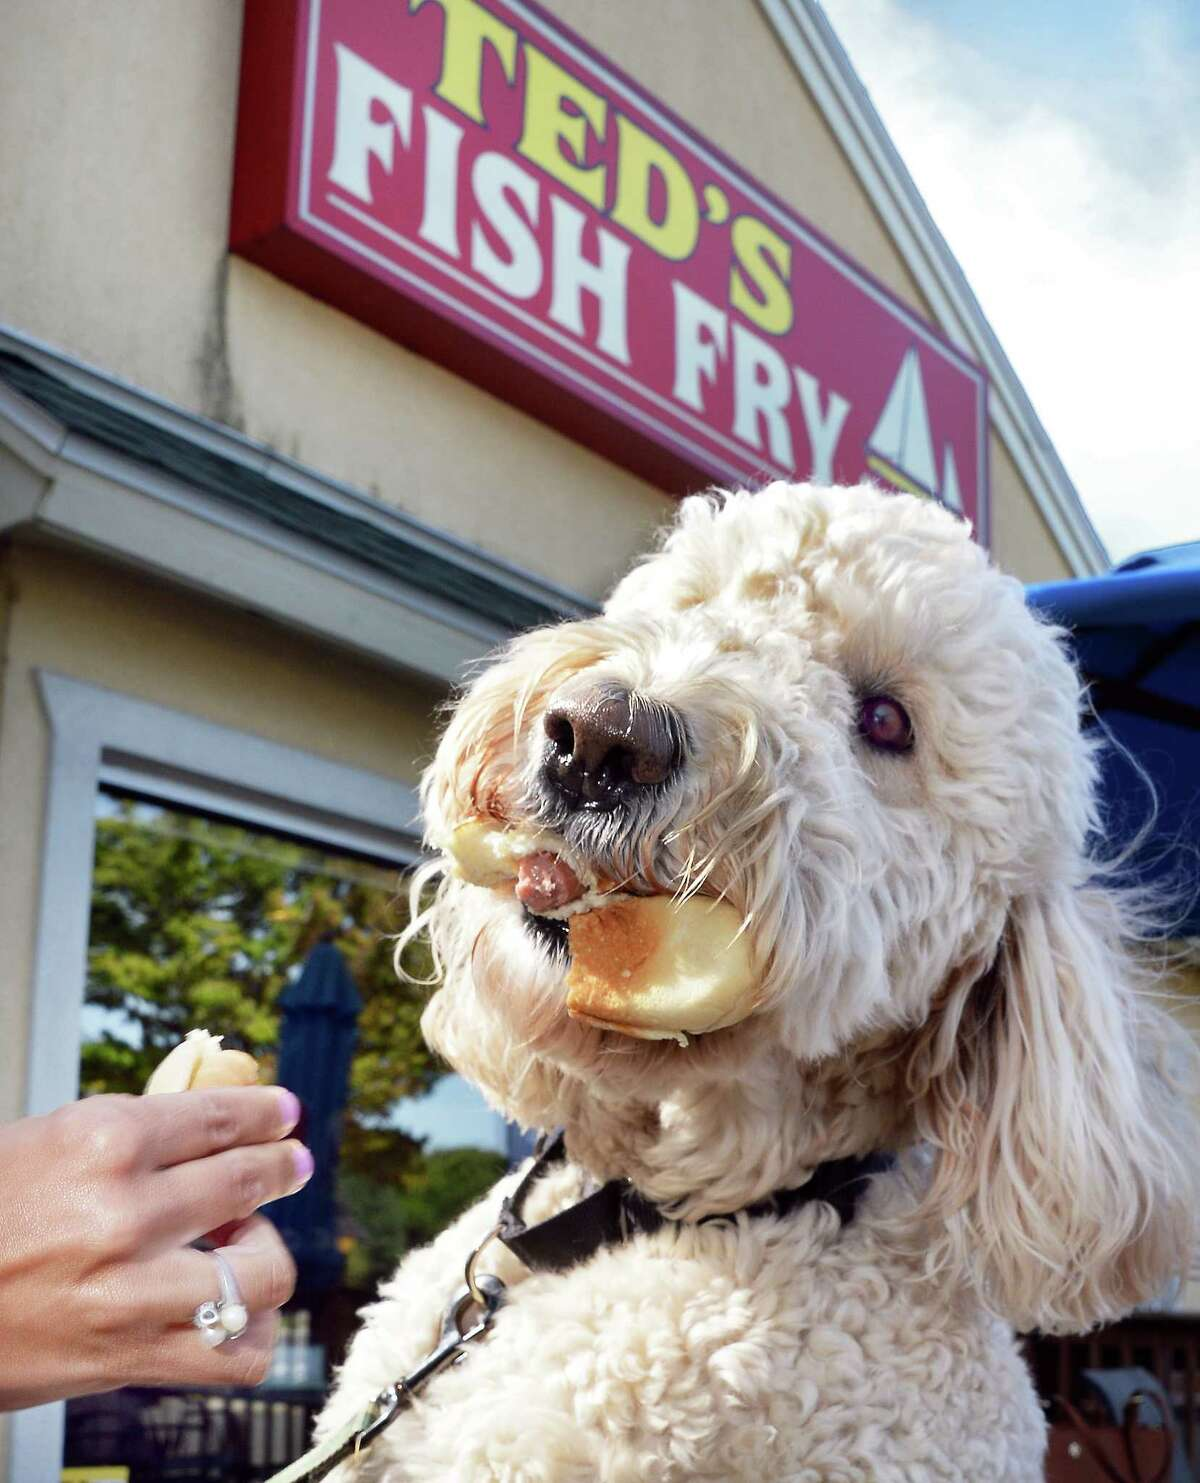 Labradoodle Buddy gets a taste of a hot dog from owner Deanna Deeb-DeBonis at Ted's Fish Fry on Wolf Road Friday Sept. 1, 2017 in Colonie, NY. (John Carl D'Annibale / Times Union)